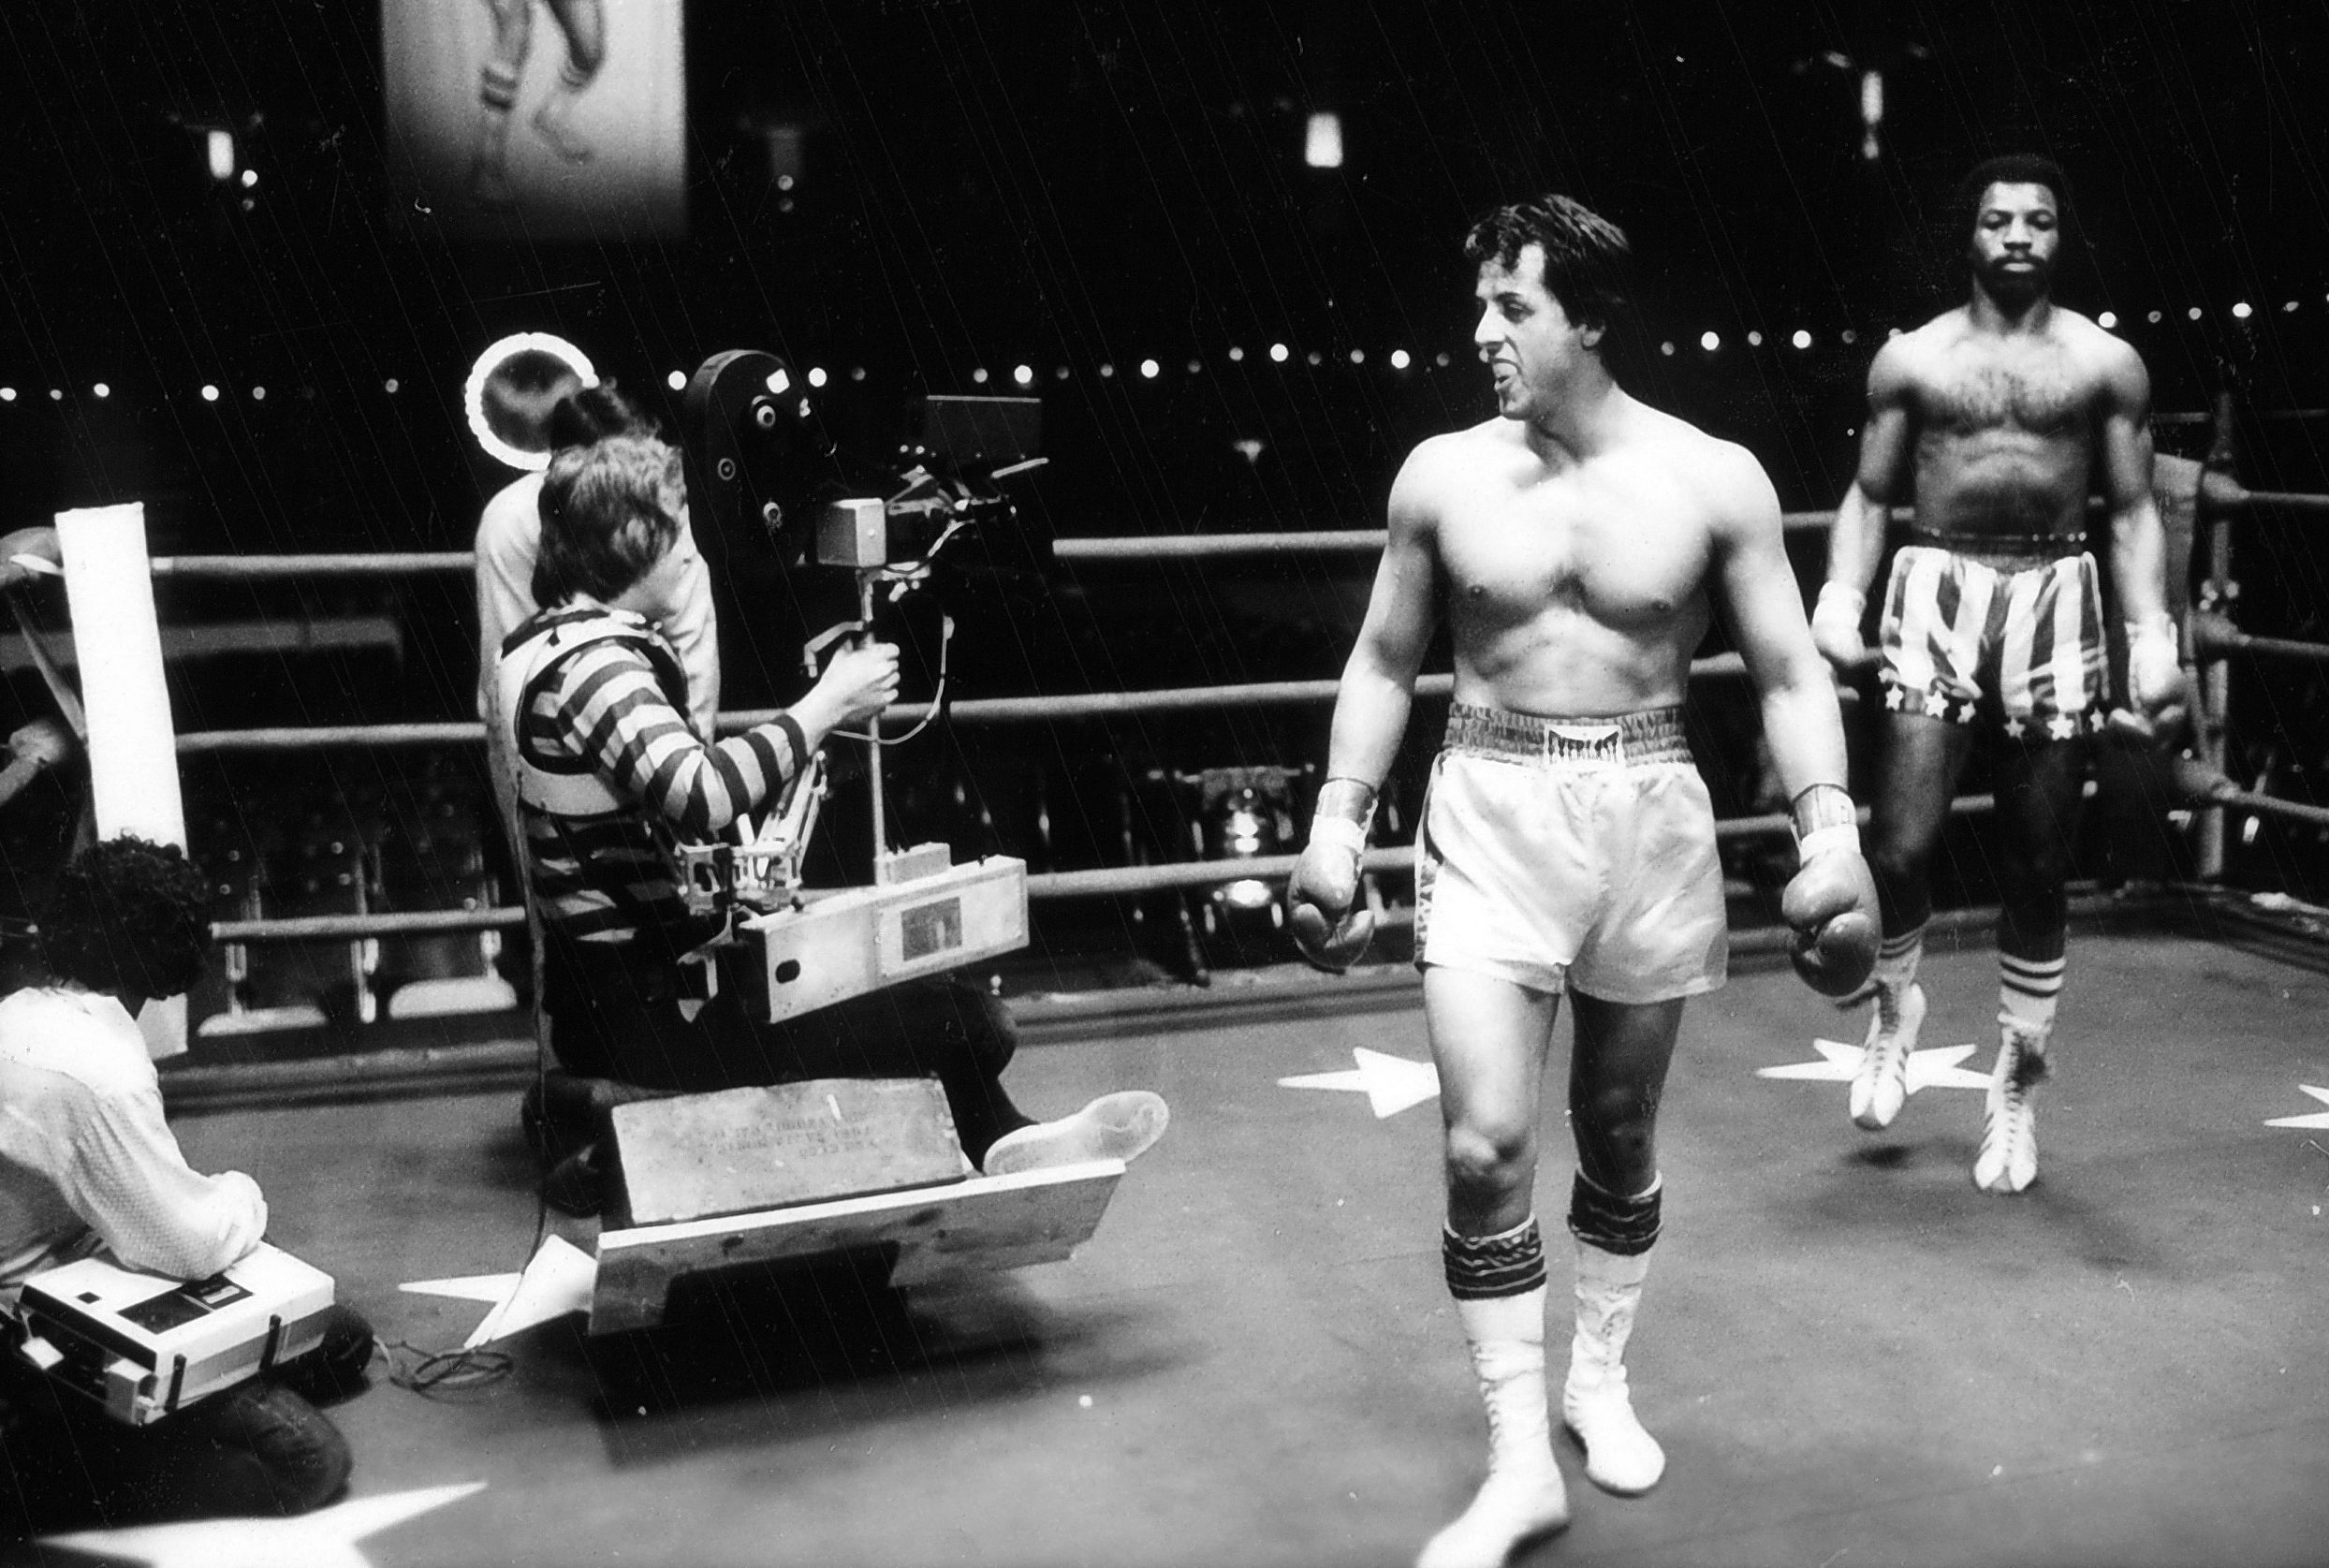 photo tournage coulisse cinema Rocky2 15 Photos sur des tournages de films #2